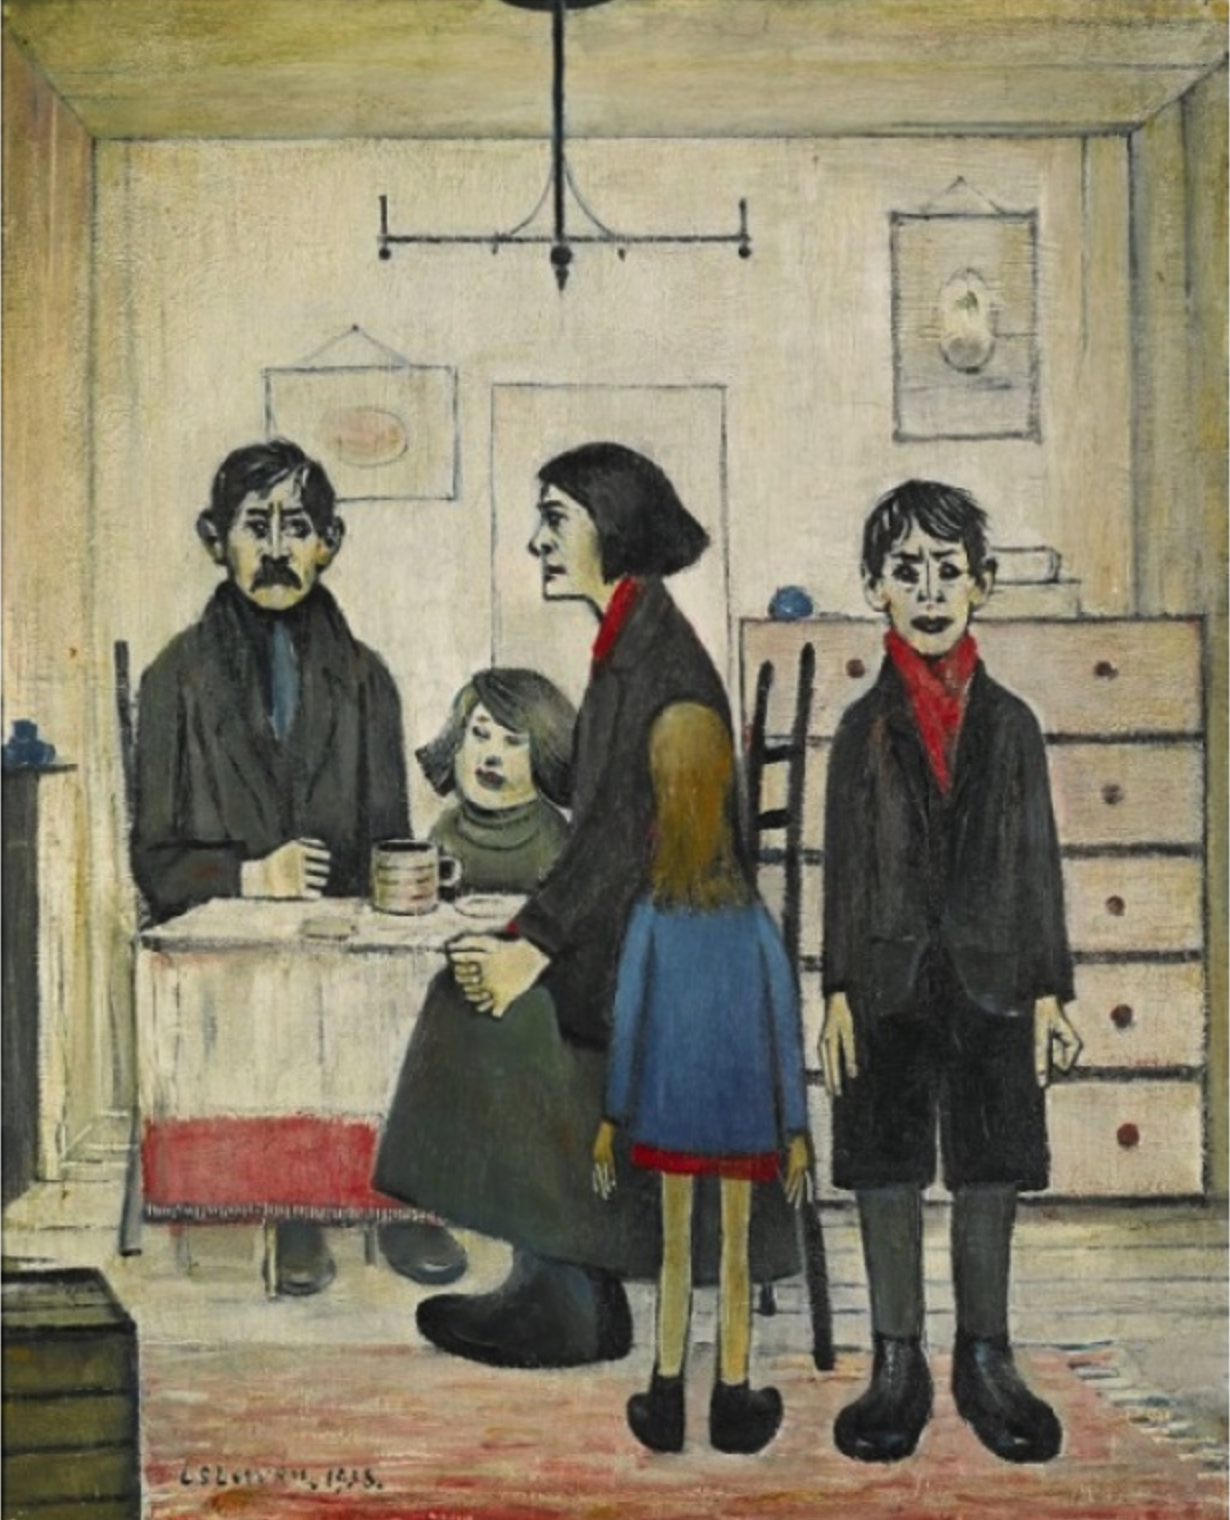 Family Group (1938) by Laurence Stephen Lowry (1887 - 1976), English artist.